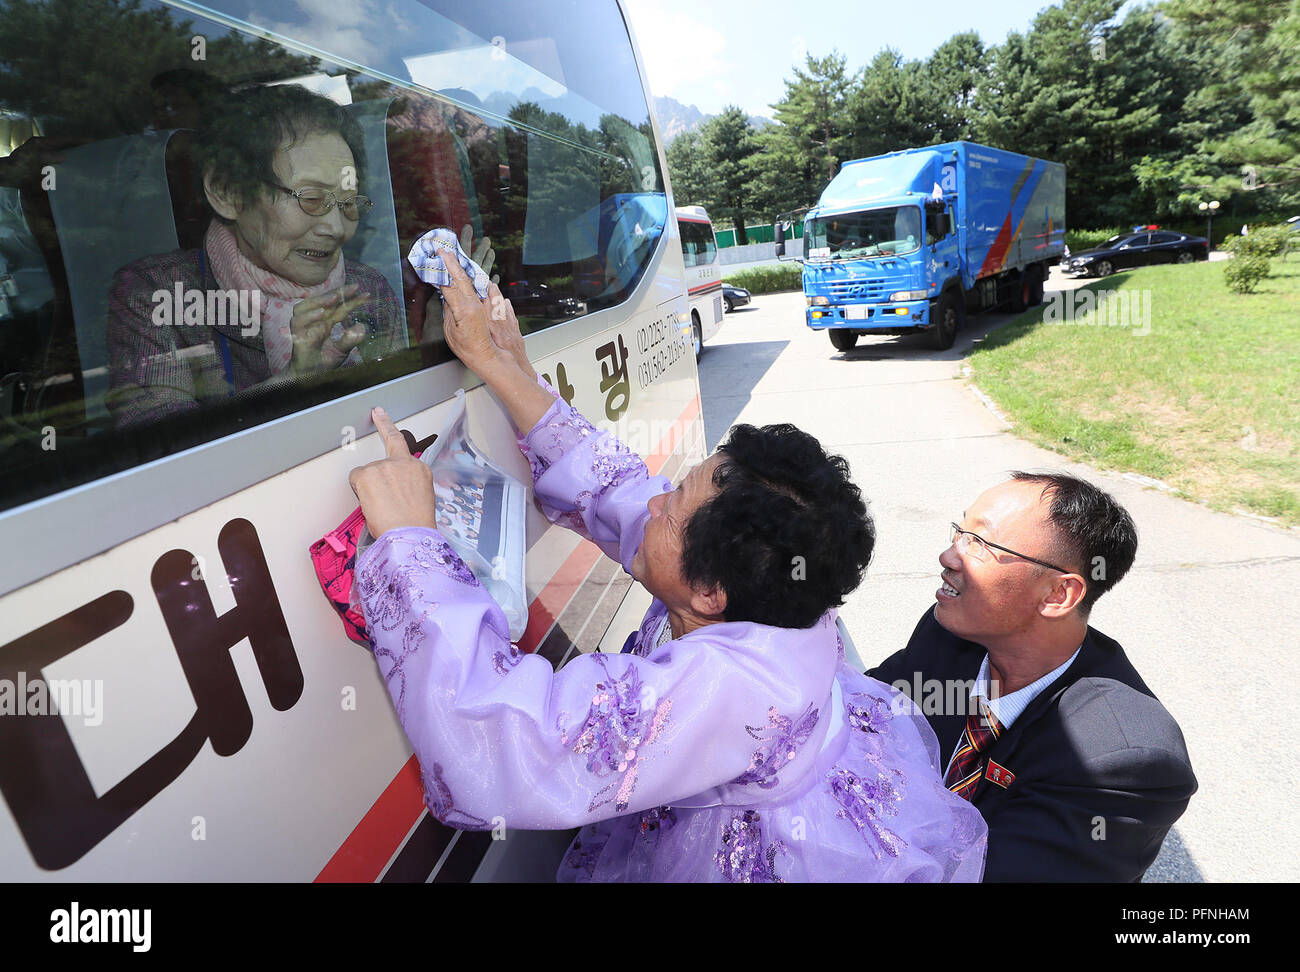 Kumgang Mountain, North Korea. 22nd Aug, 2018. Sorrow of parting Han Sin-ja, 99, of South Korea, bids farewell to her North Korean daughter at the end of the three-day family reunion event at a hotel at the Kumgang Mountain resort on the North's scenic mountain near the east coast on Aug. 22, 2018. The inter-Korean reunion of families separated by the 1950-53 Korean War was the first of its kind in nearly three years. (Pool photo) Credit: Yonhap/Newcom/Alamy Live News Stock Photo